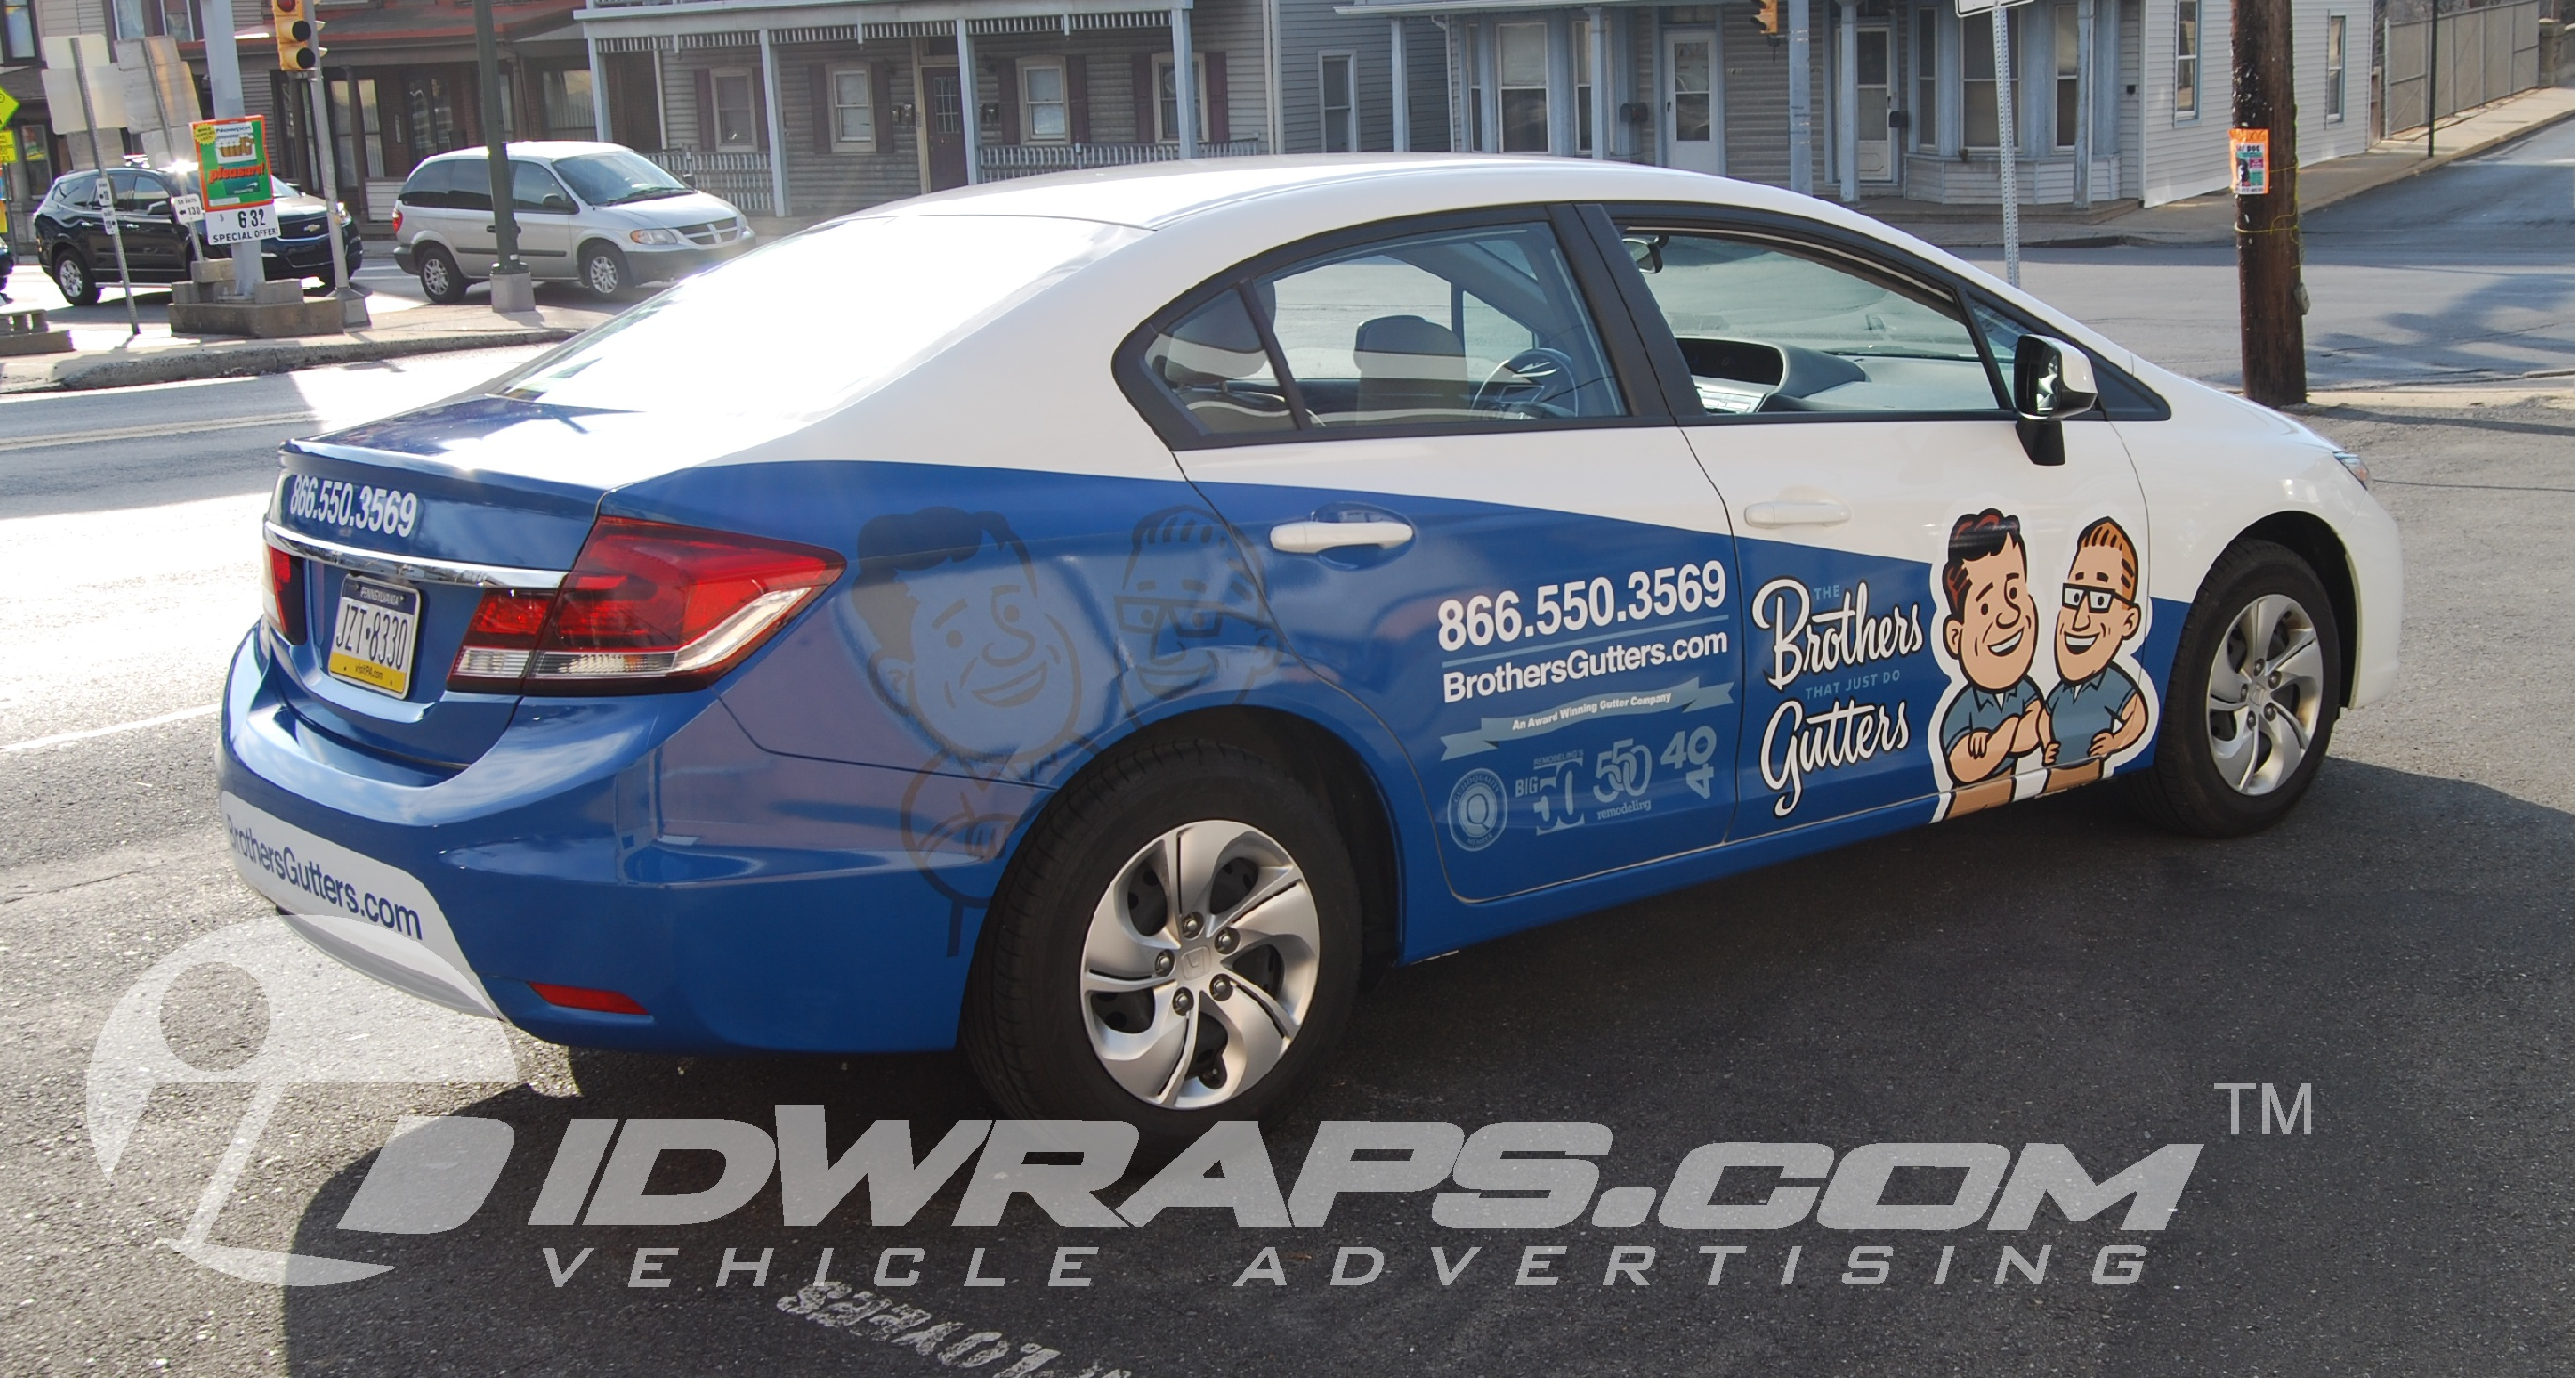 Gutter Company Wrap On Honda Civic 3M Vinyl Partial Graphic